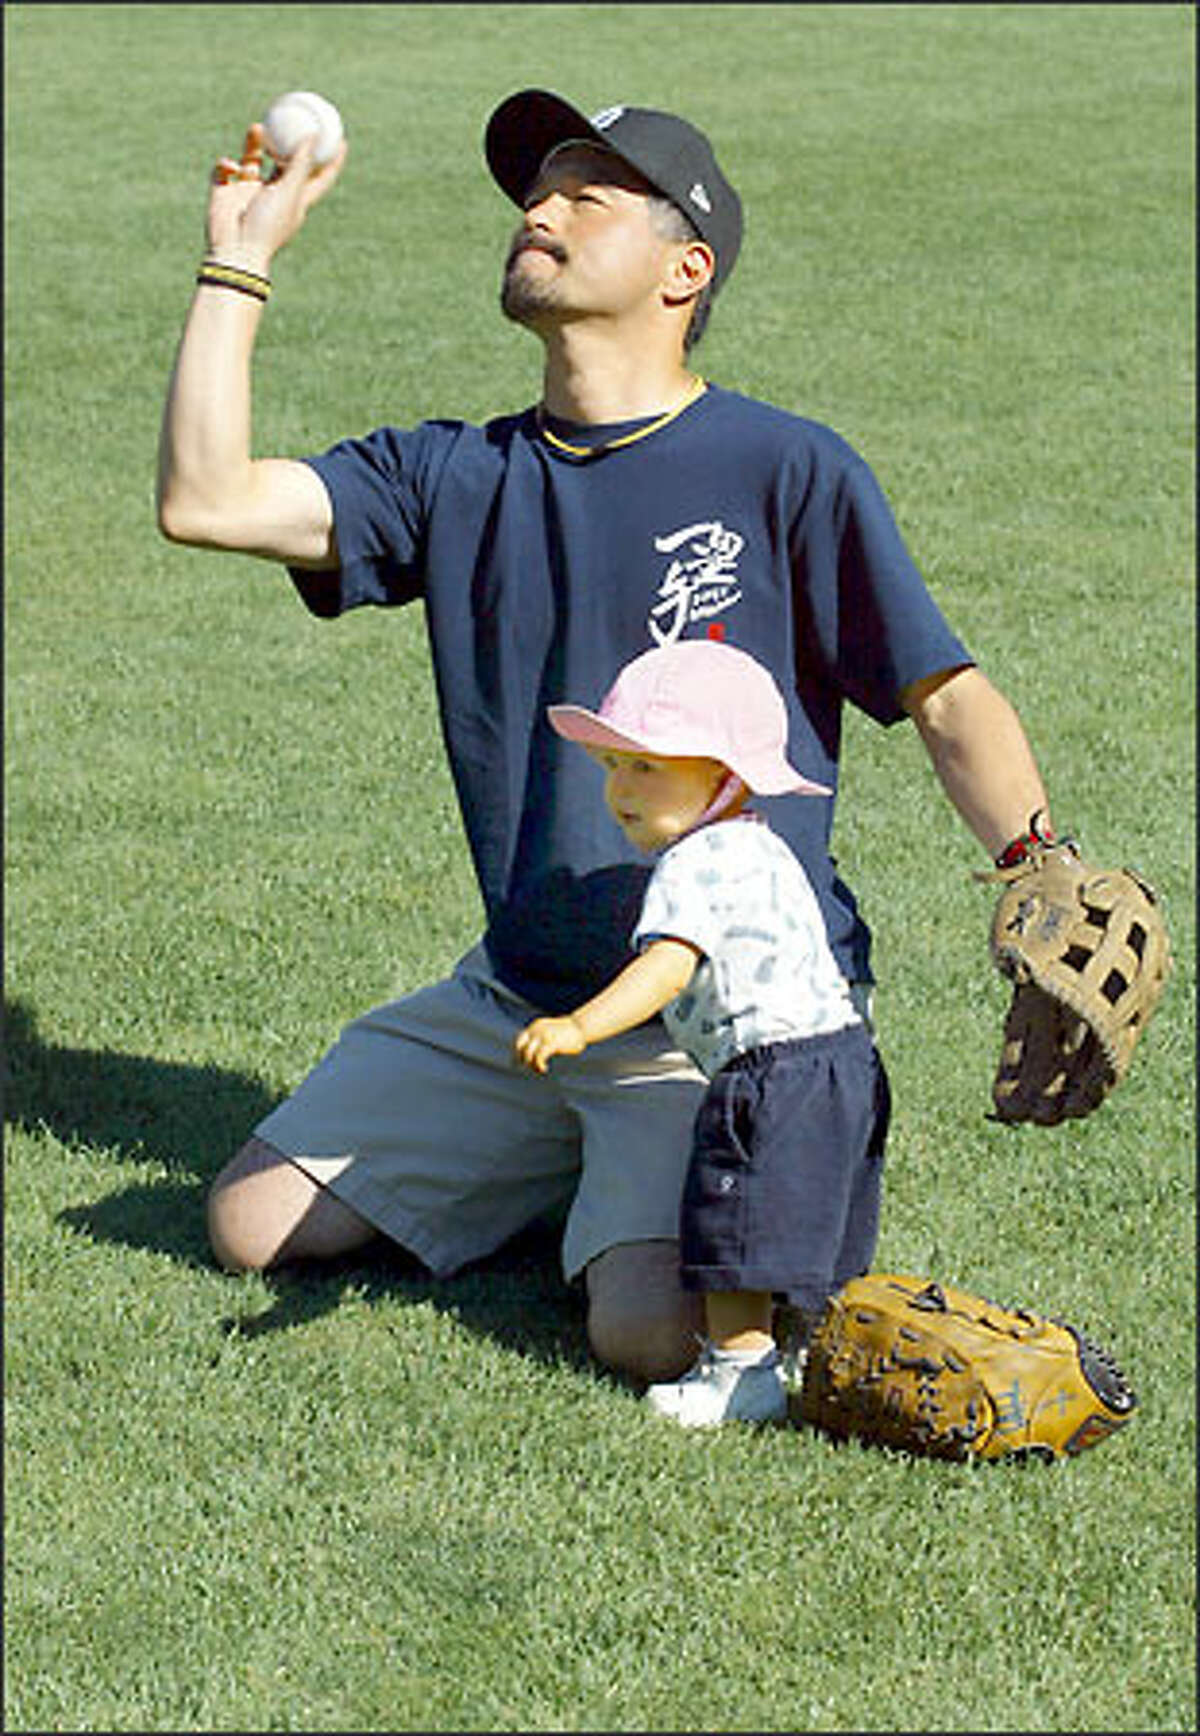 Yoshitaka Inoue tosses a ball to his son yesterday at Safeco Field, while daughter Erina prefers to stay close.